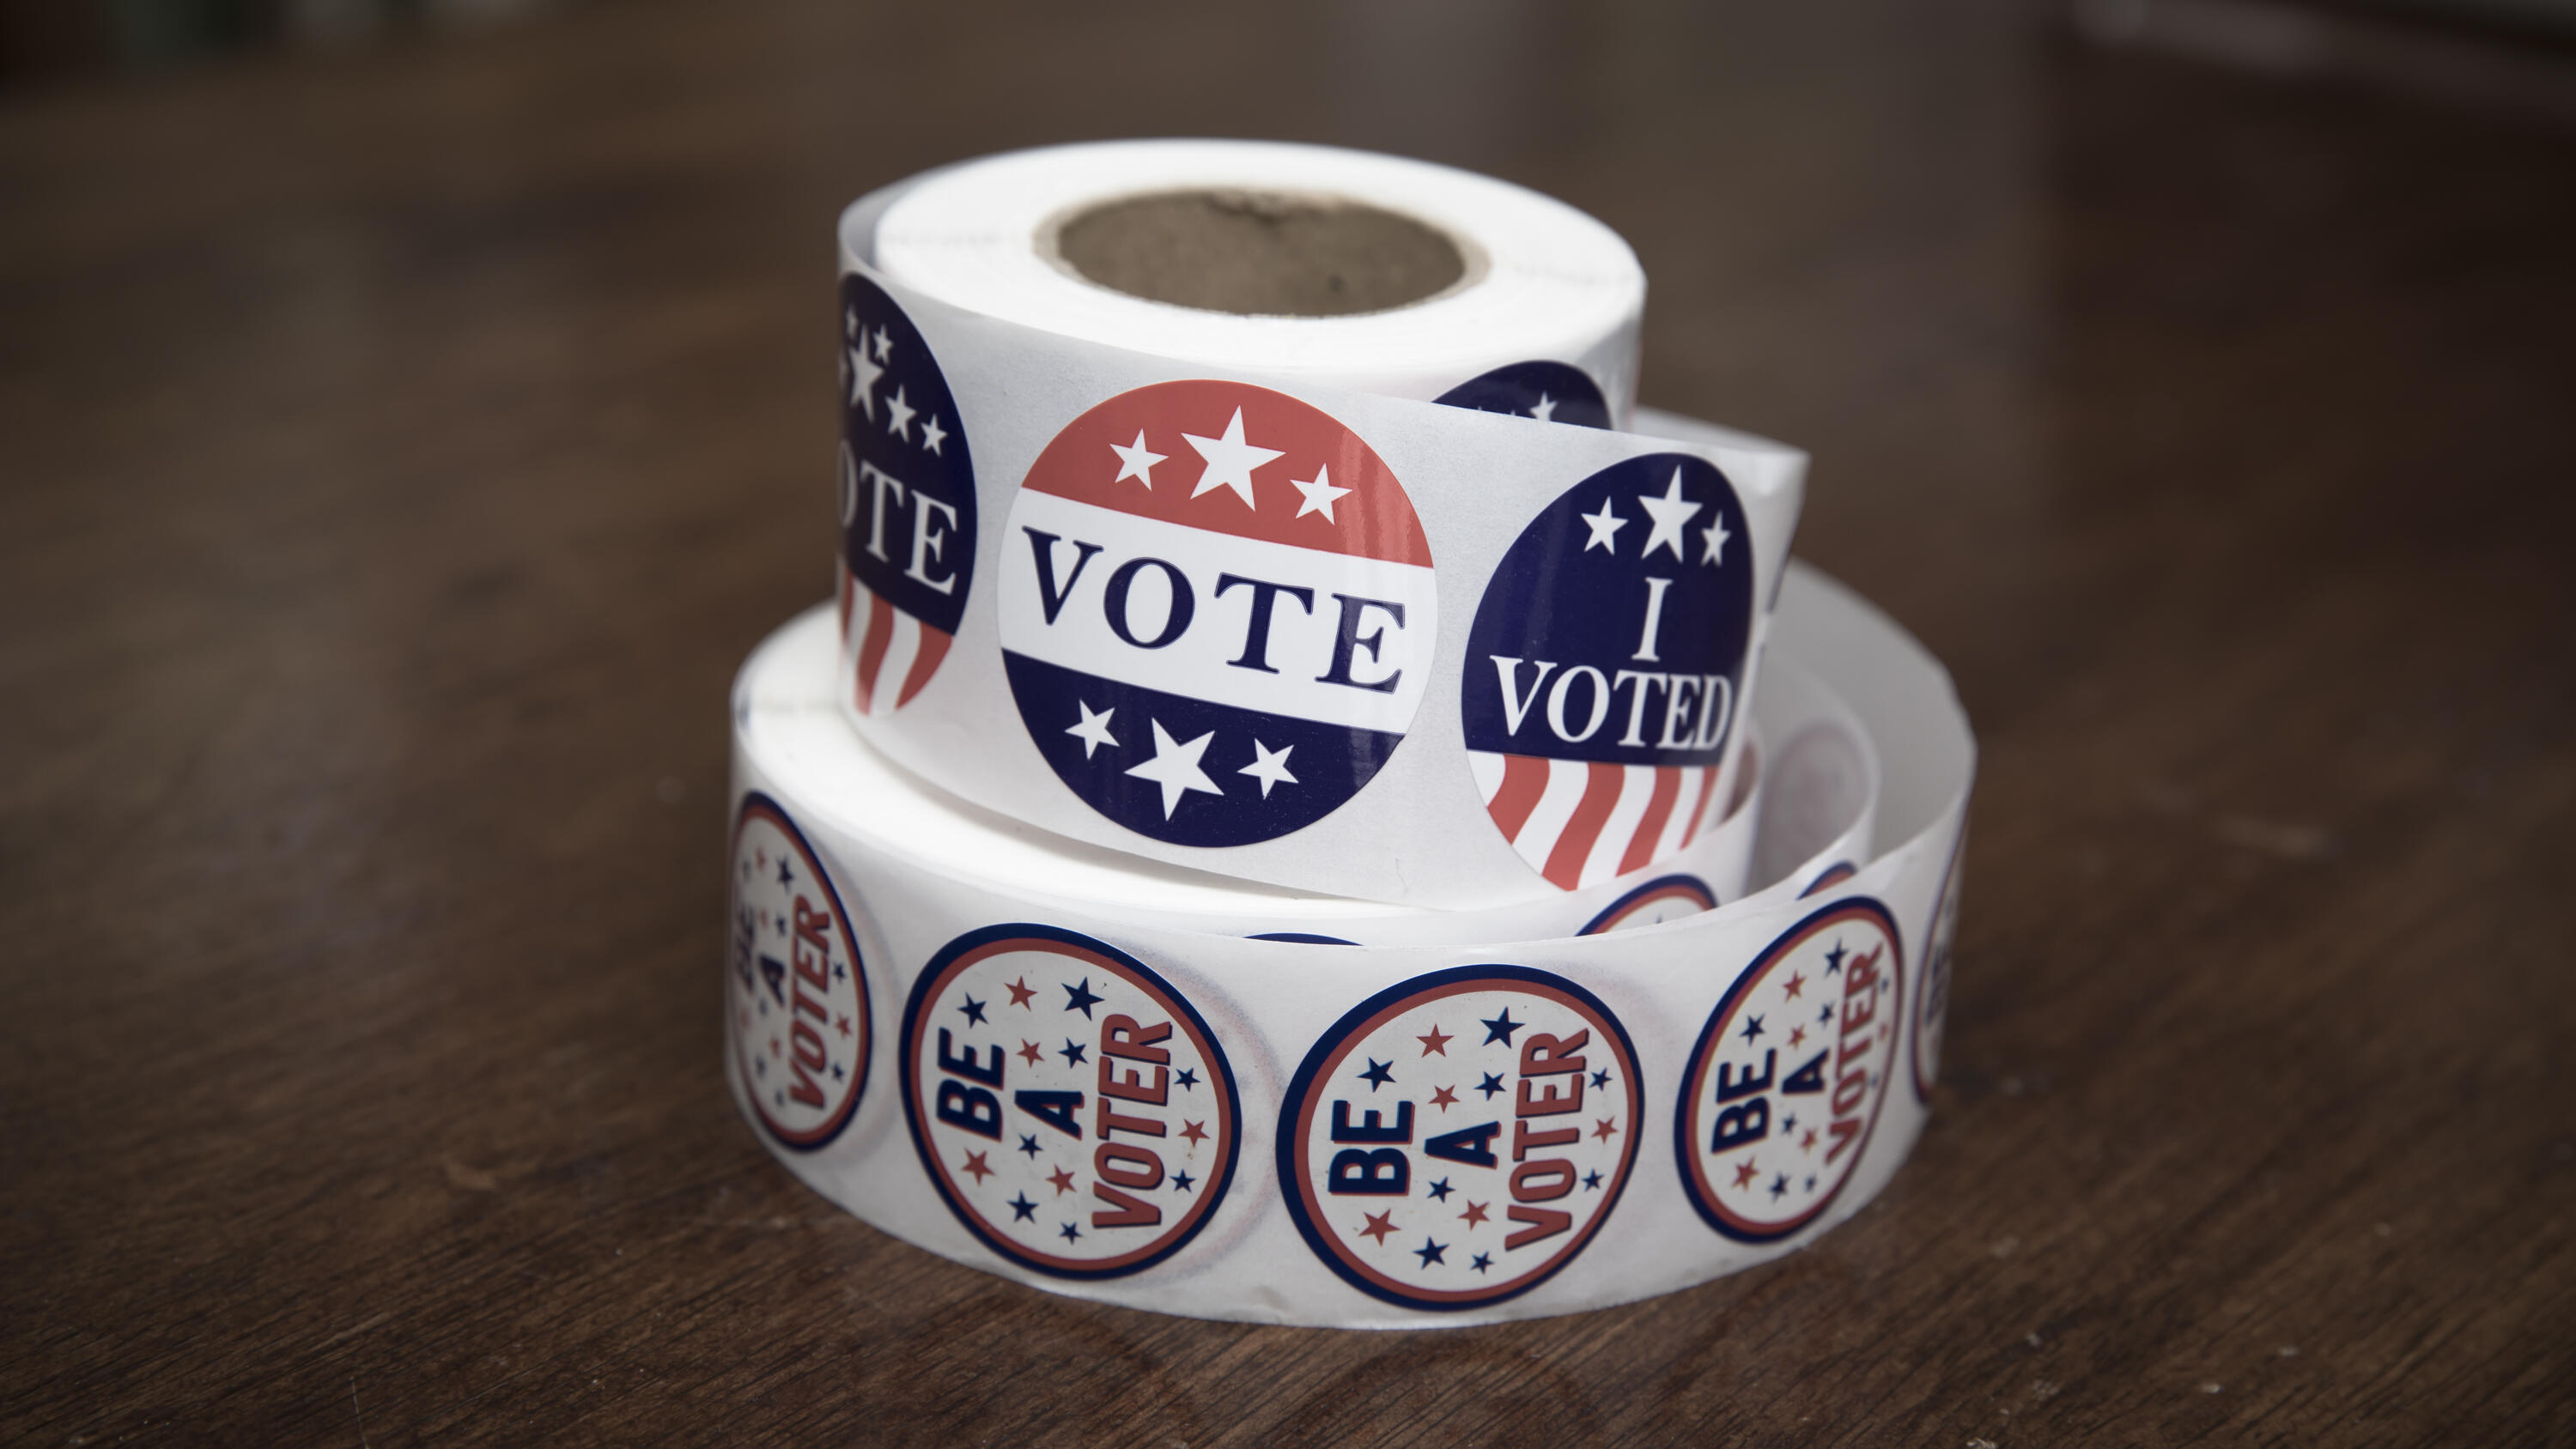 Vote stickers for the elction